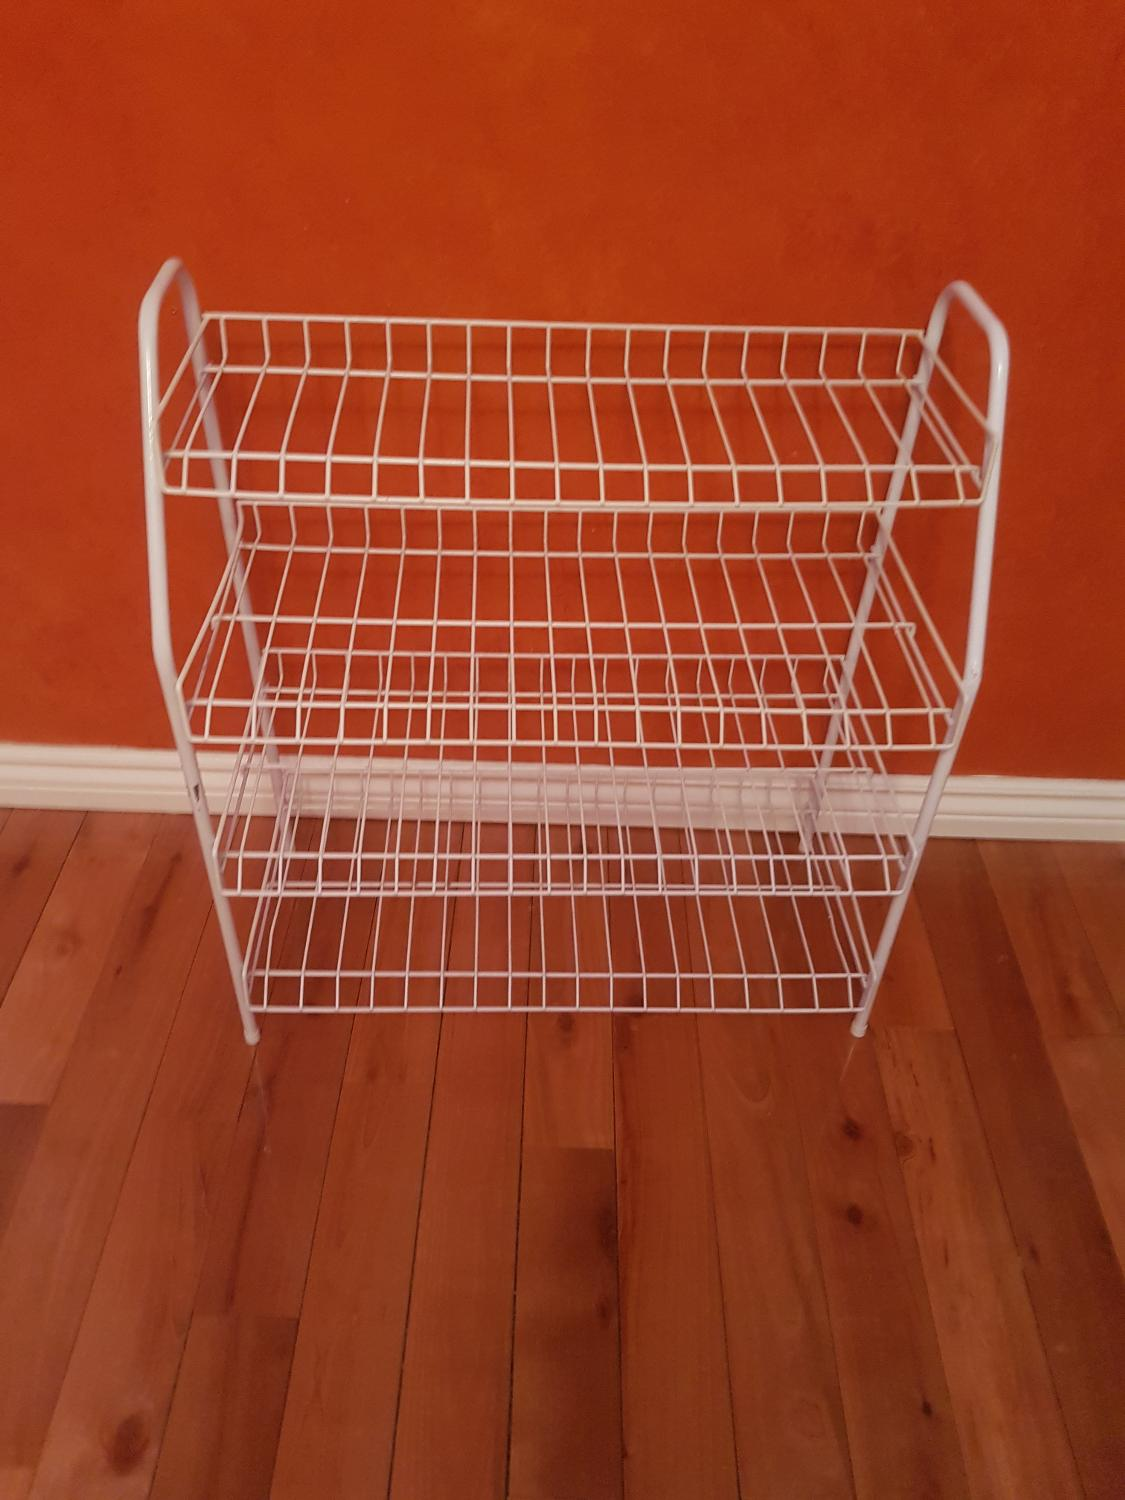 find more wire white shoe rack for sale at up to 90 off ajax on. Black Bedroom Furniture Sets. Home Design Ideas